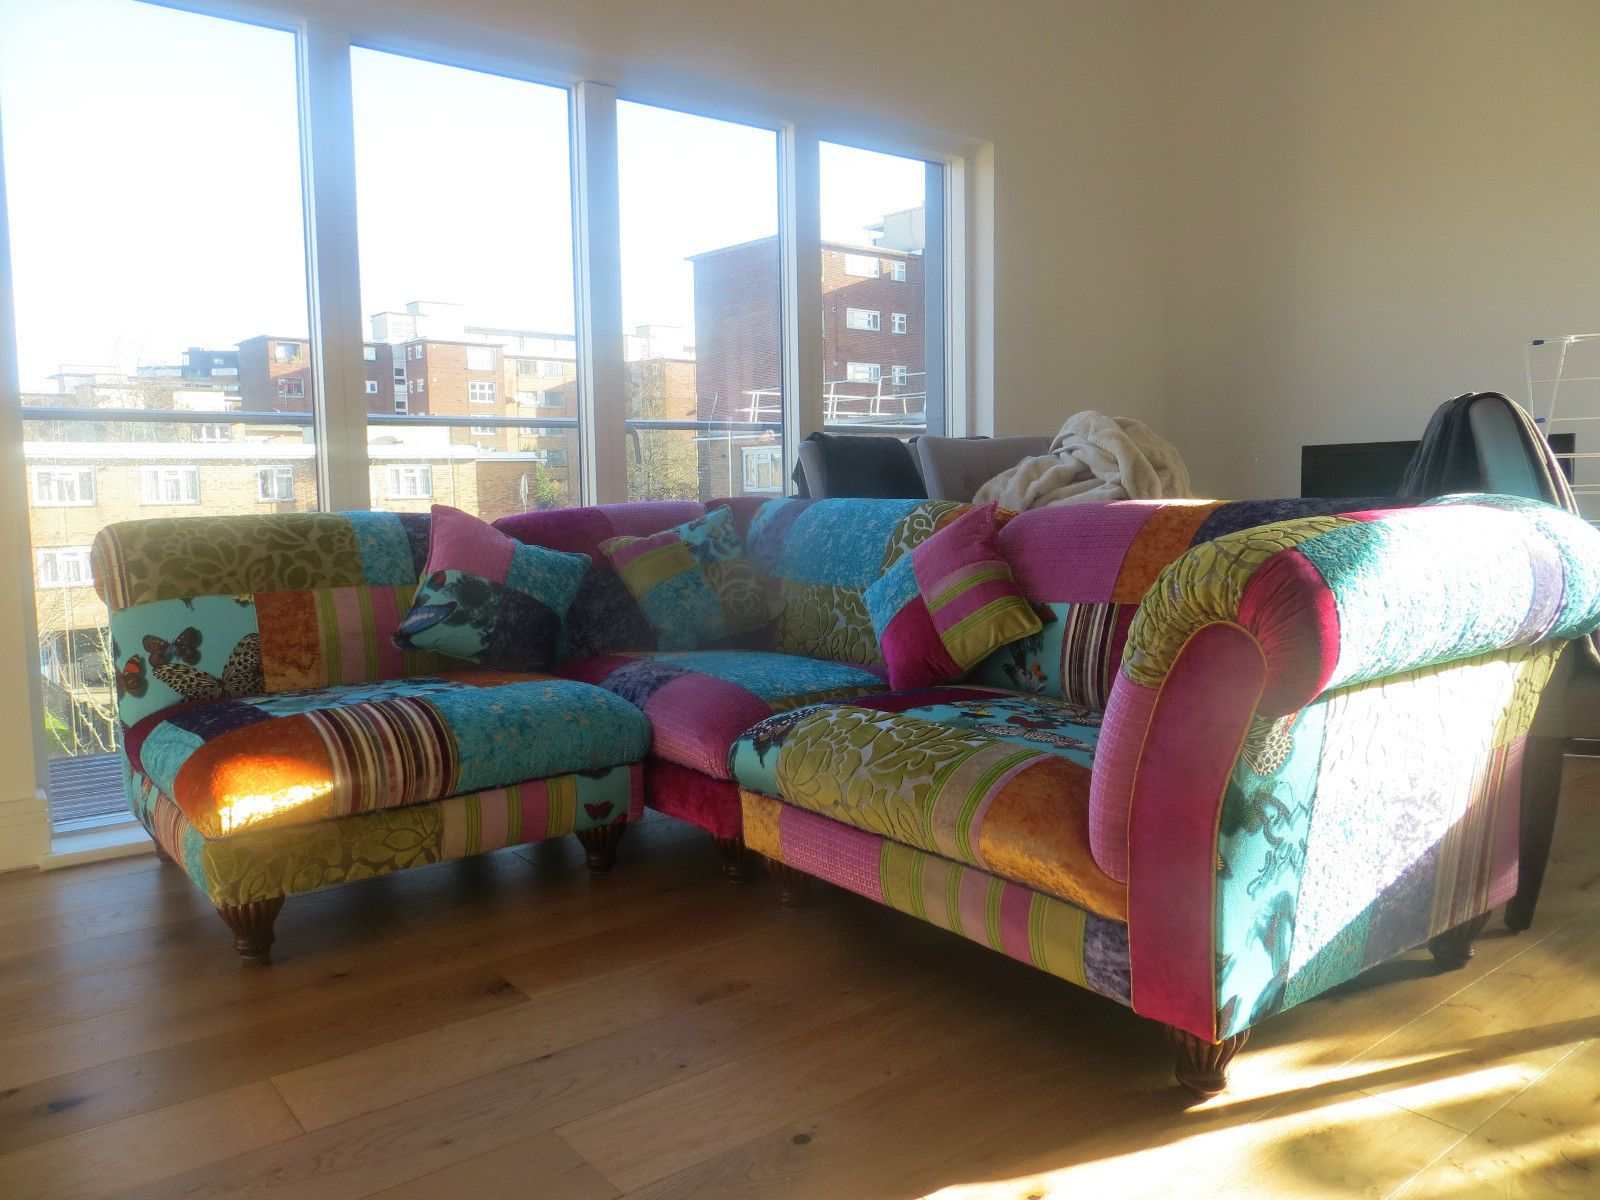 Divano Patchwork ~ Details about vibrant and bold chatsworth patchwork sofa bright